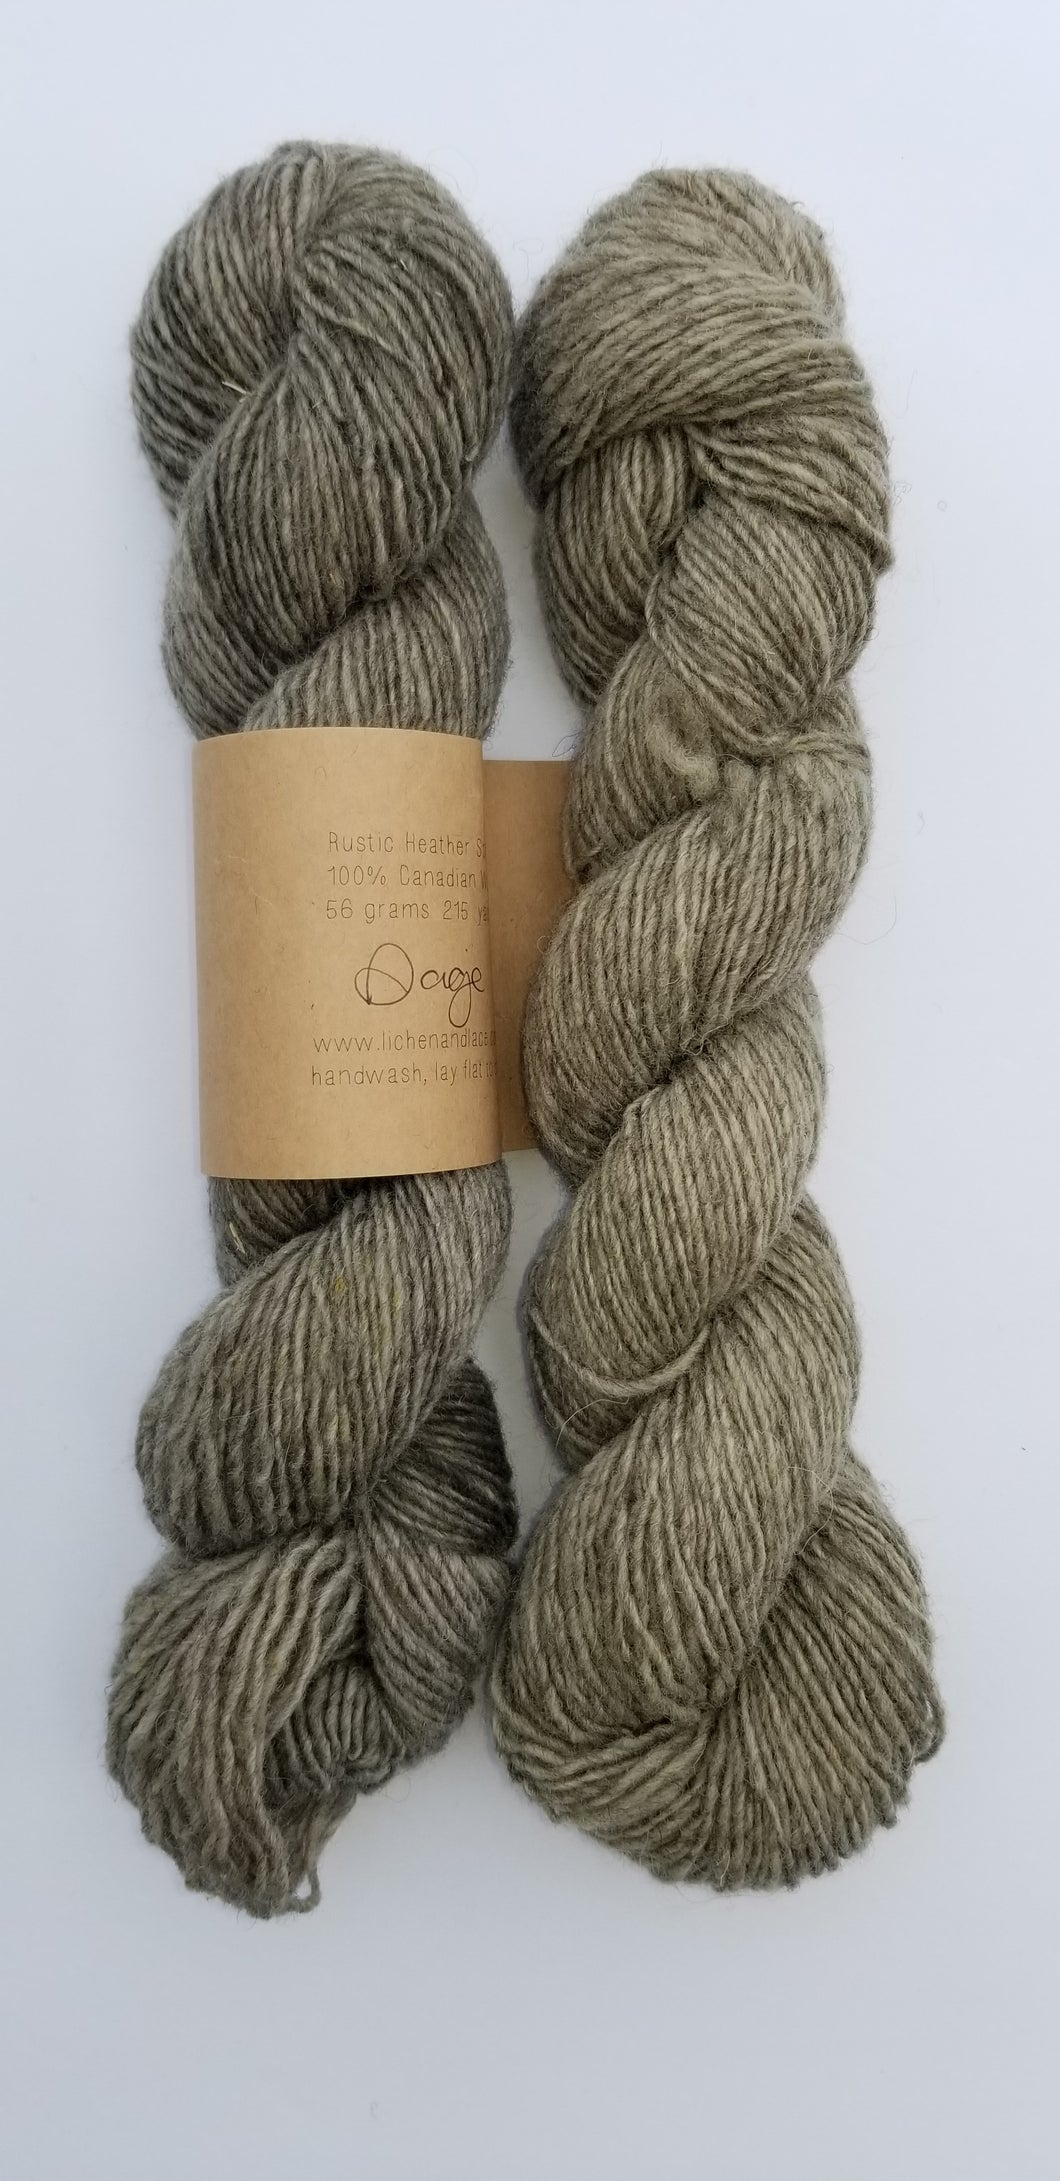 Lichen and Lace - Rustic Heather Sport - Sage